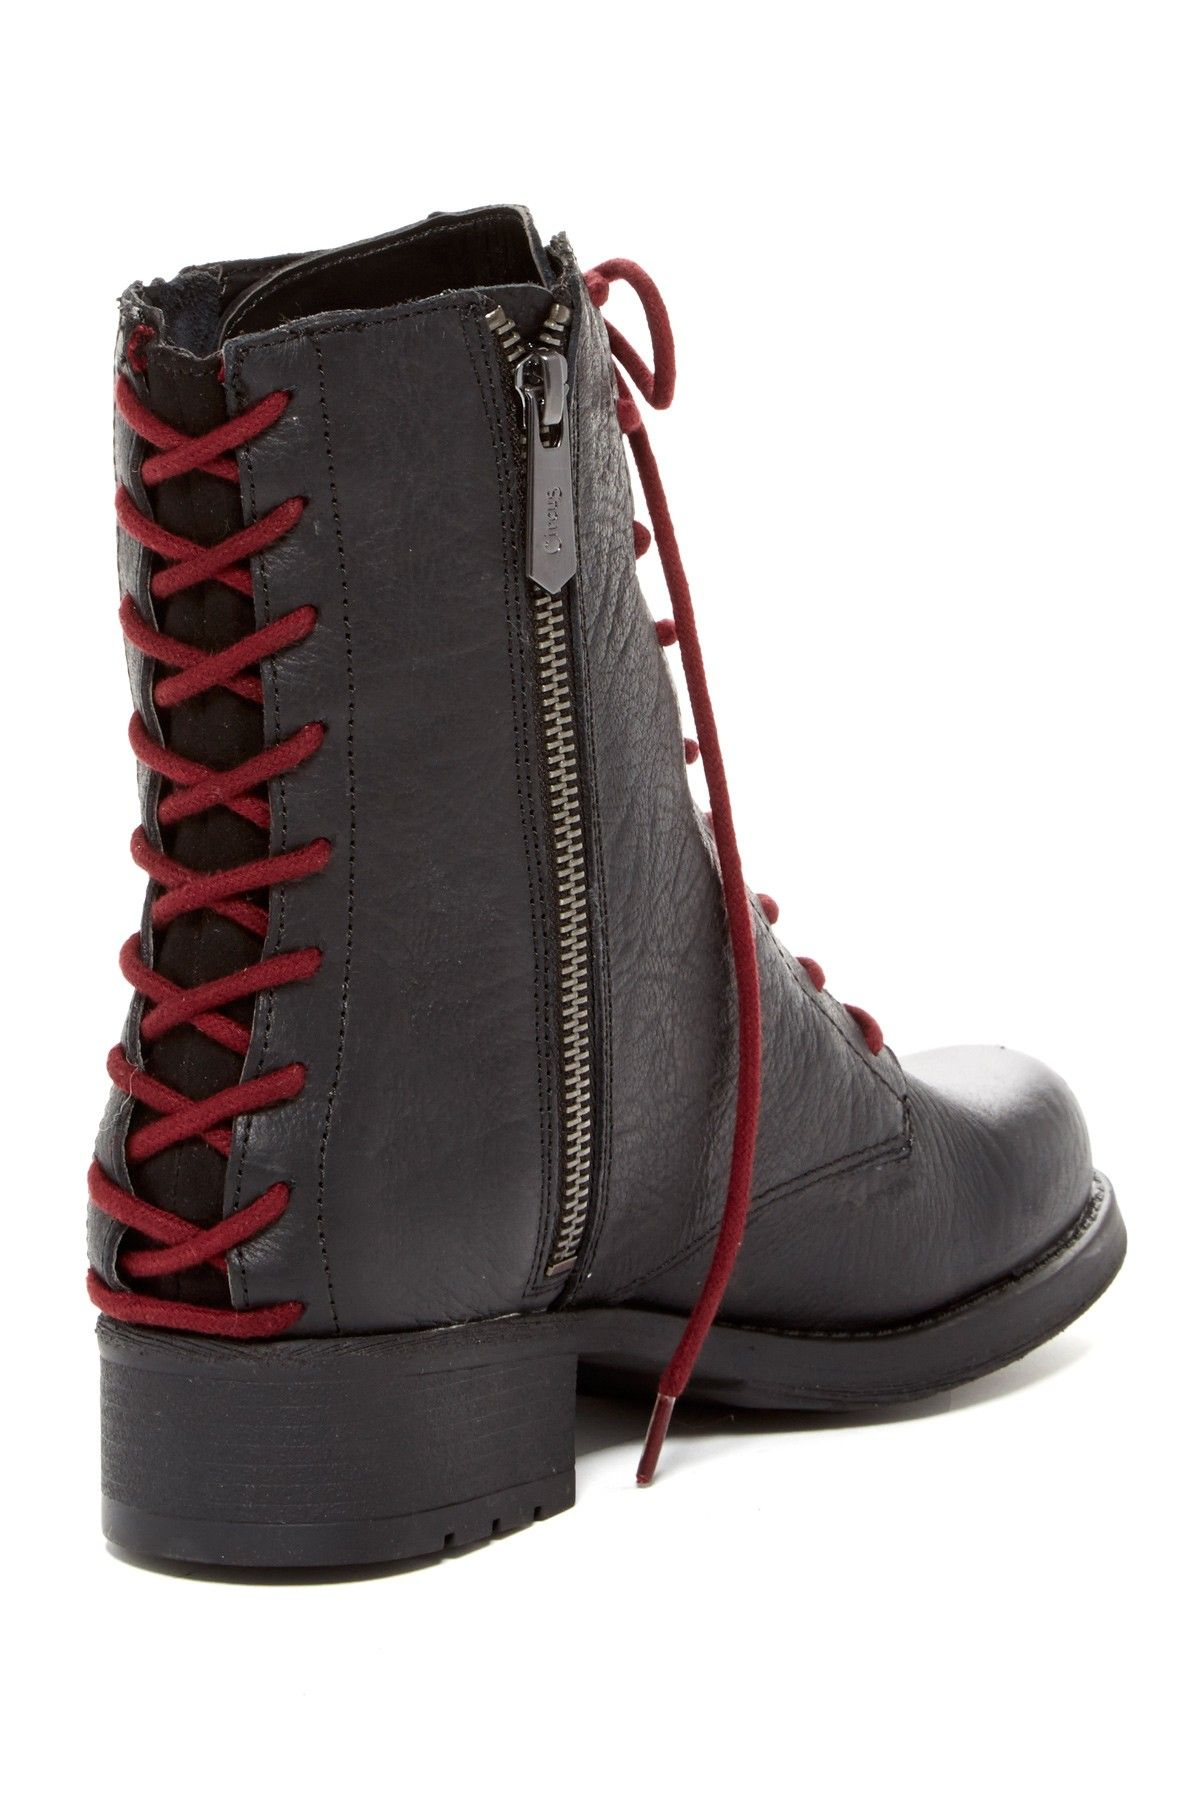 dbb3e06dbca3ae Sam Edelman boots. Change the red laces for lace ones